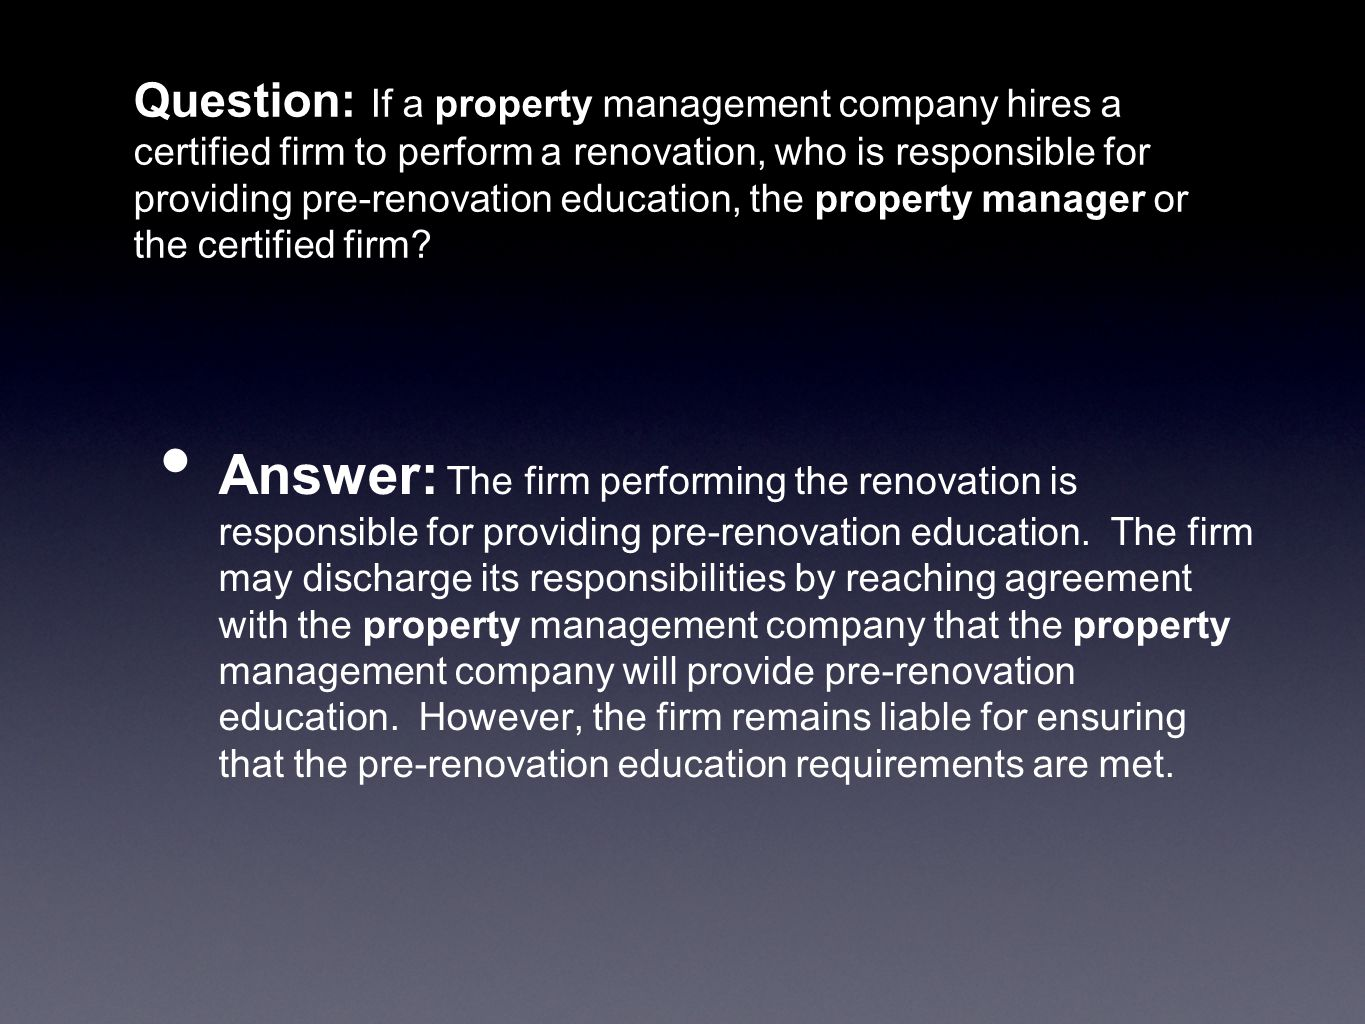 Question: If a property management company hires a certified firm to perform a renovation, who is responsible for providing pre-renovation education,